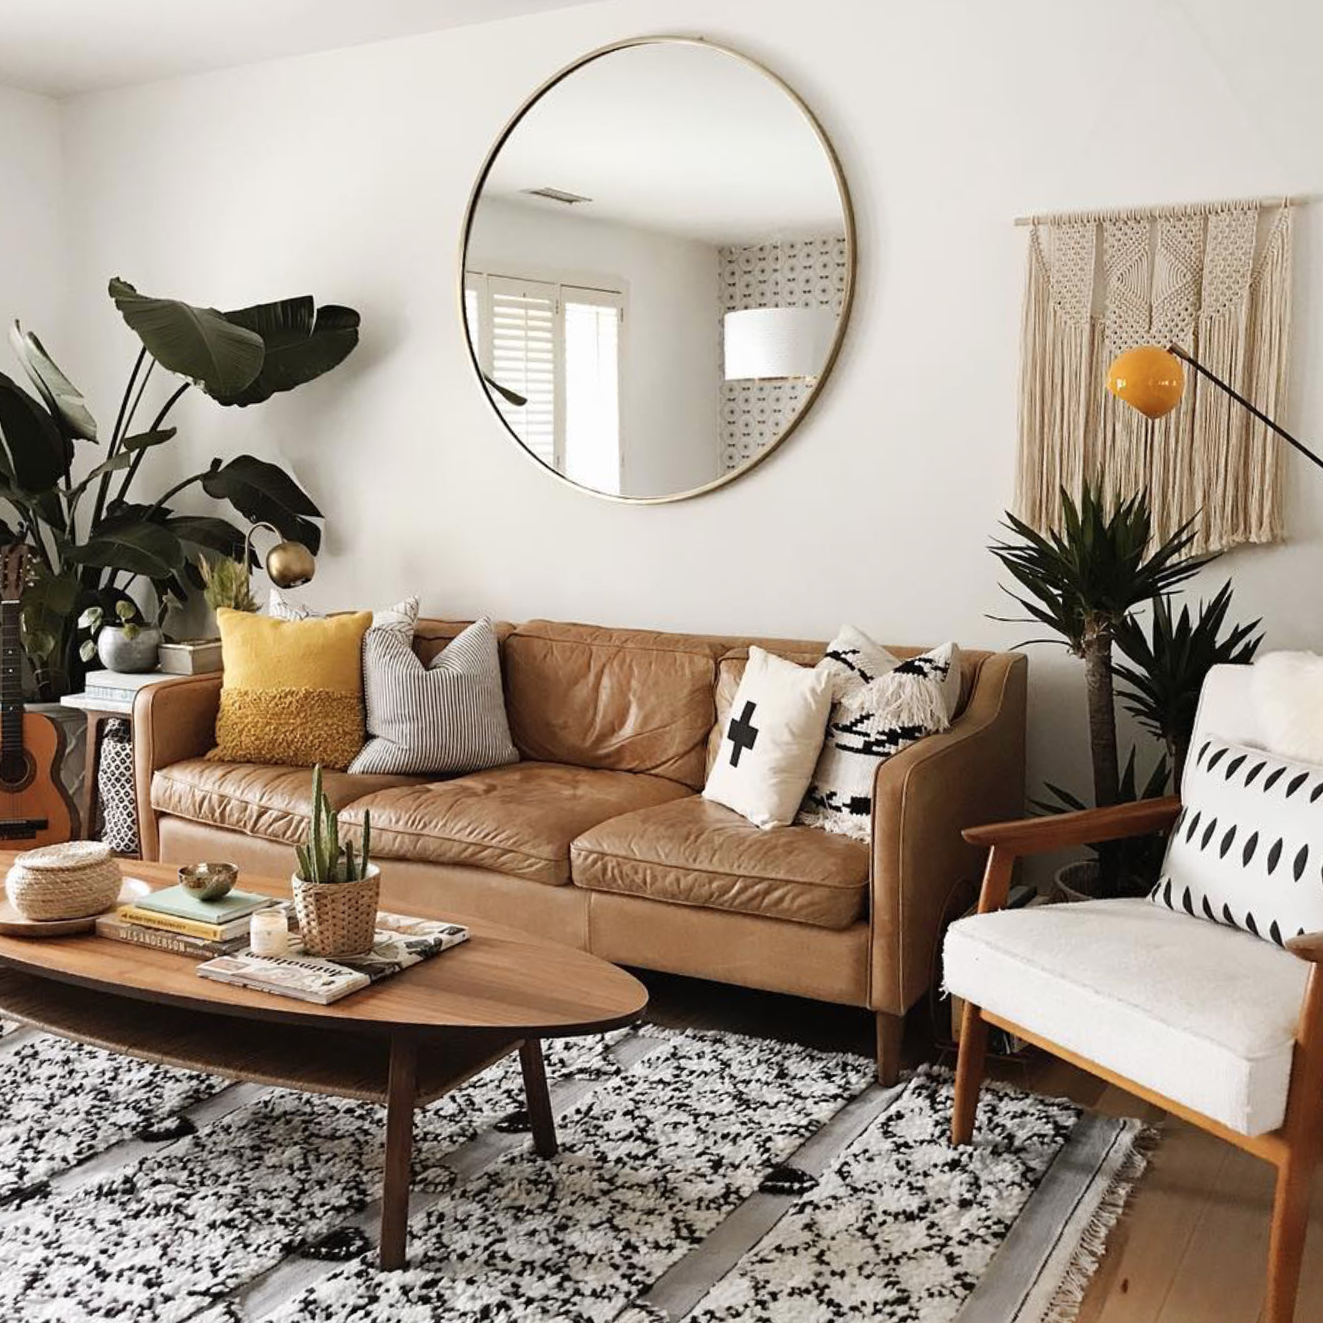 7 Apartment Decorating And Small Living Room Ideas Apartment